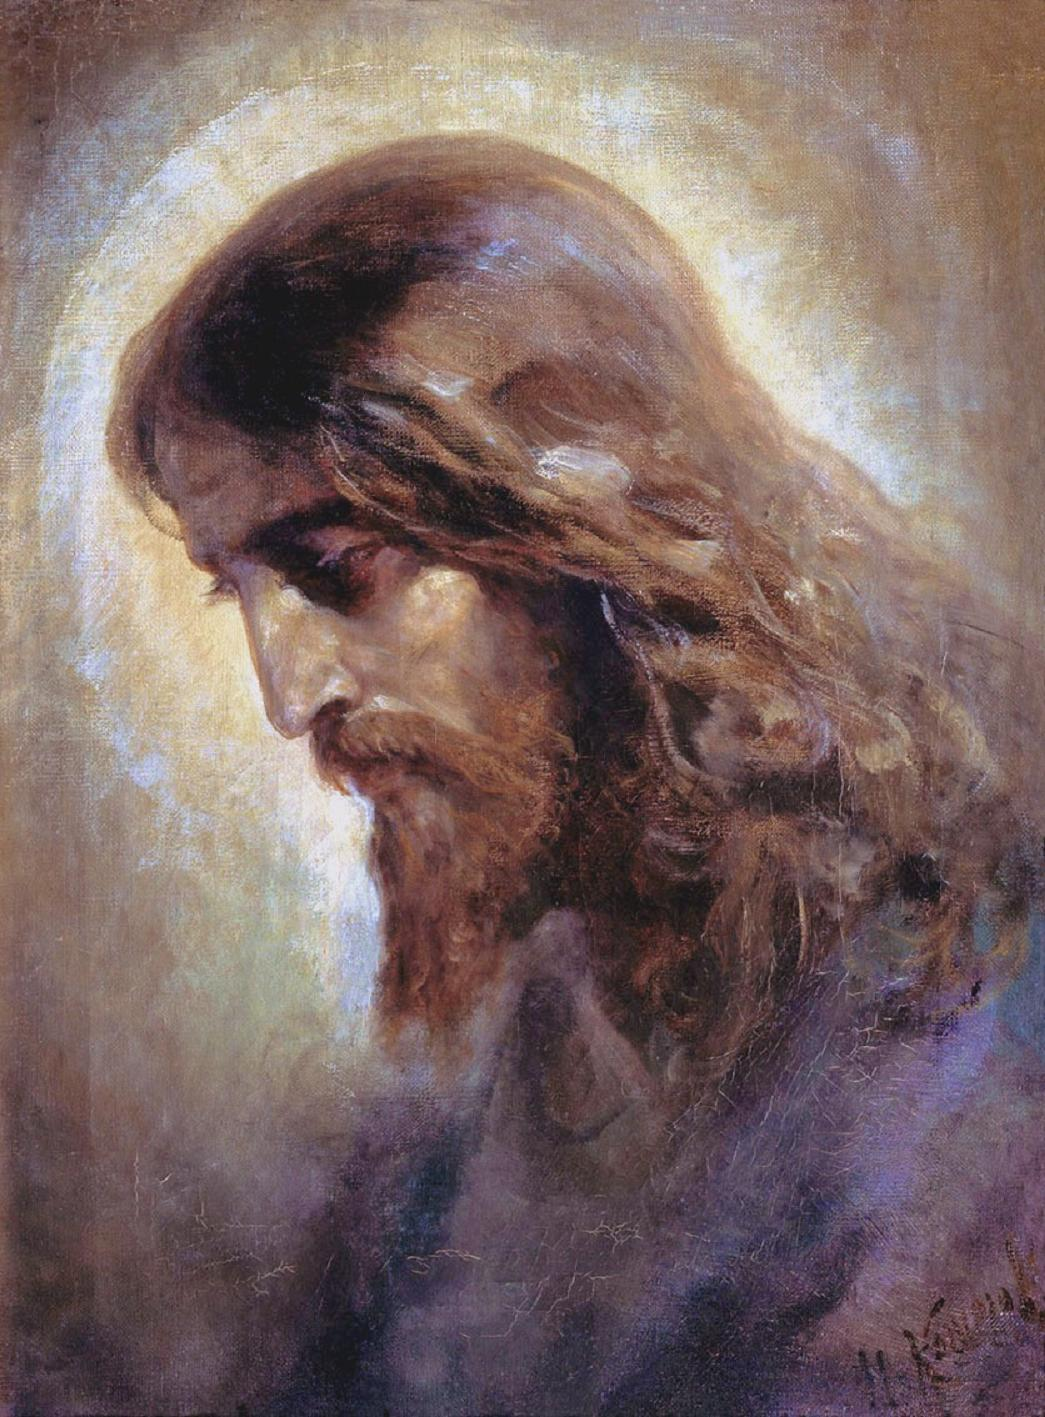 nikolai-koshelev-the-head-of-christ-1880s